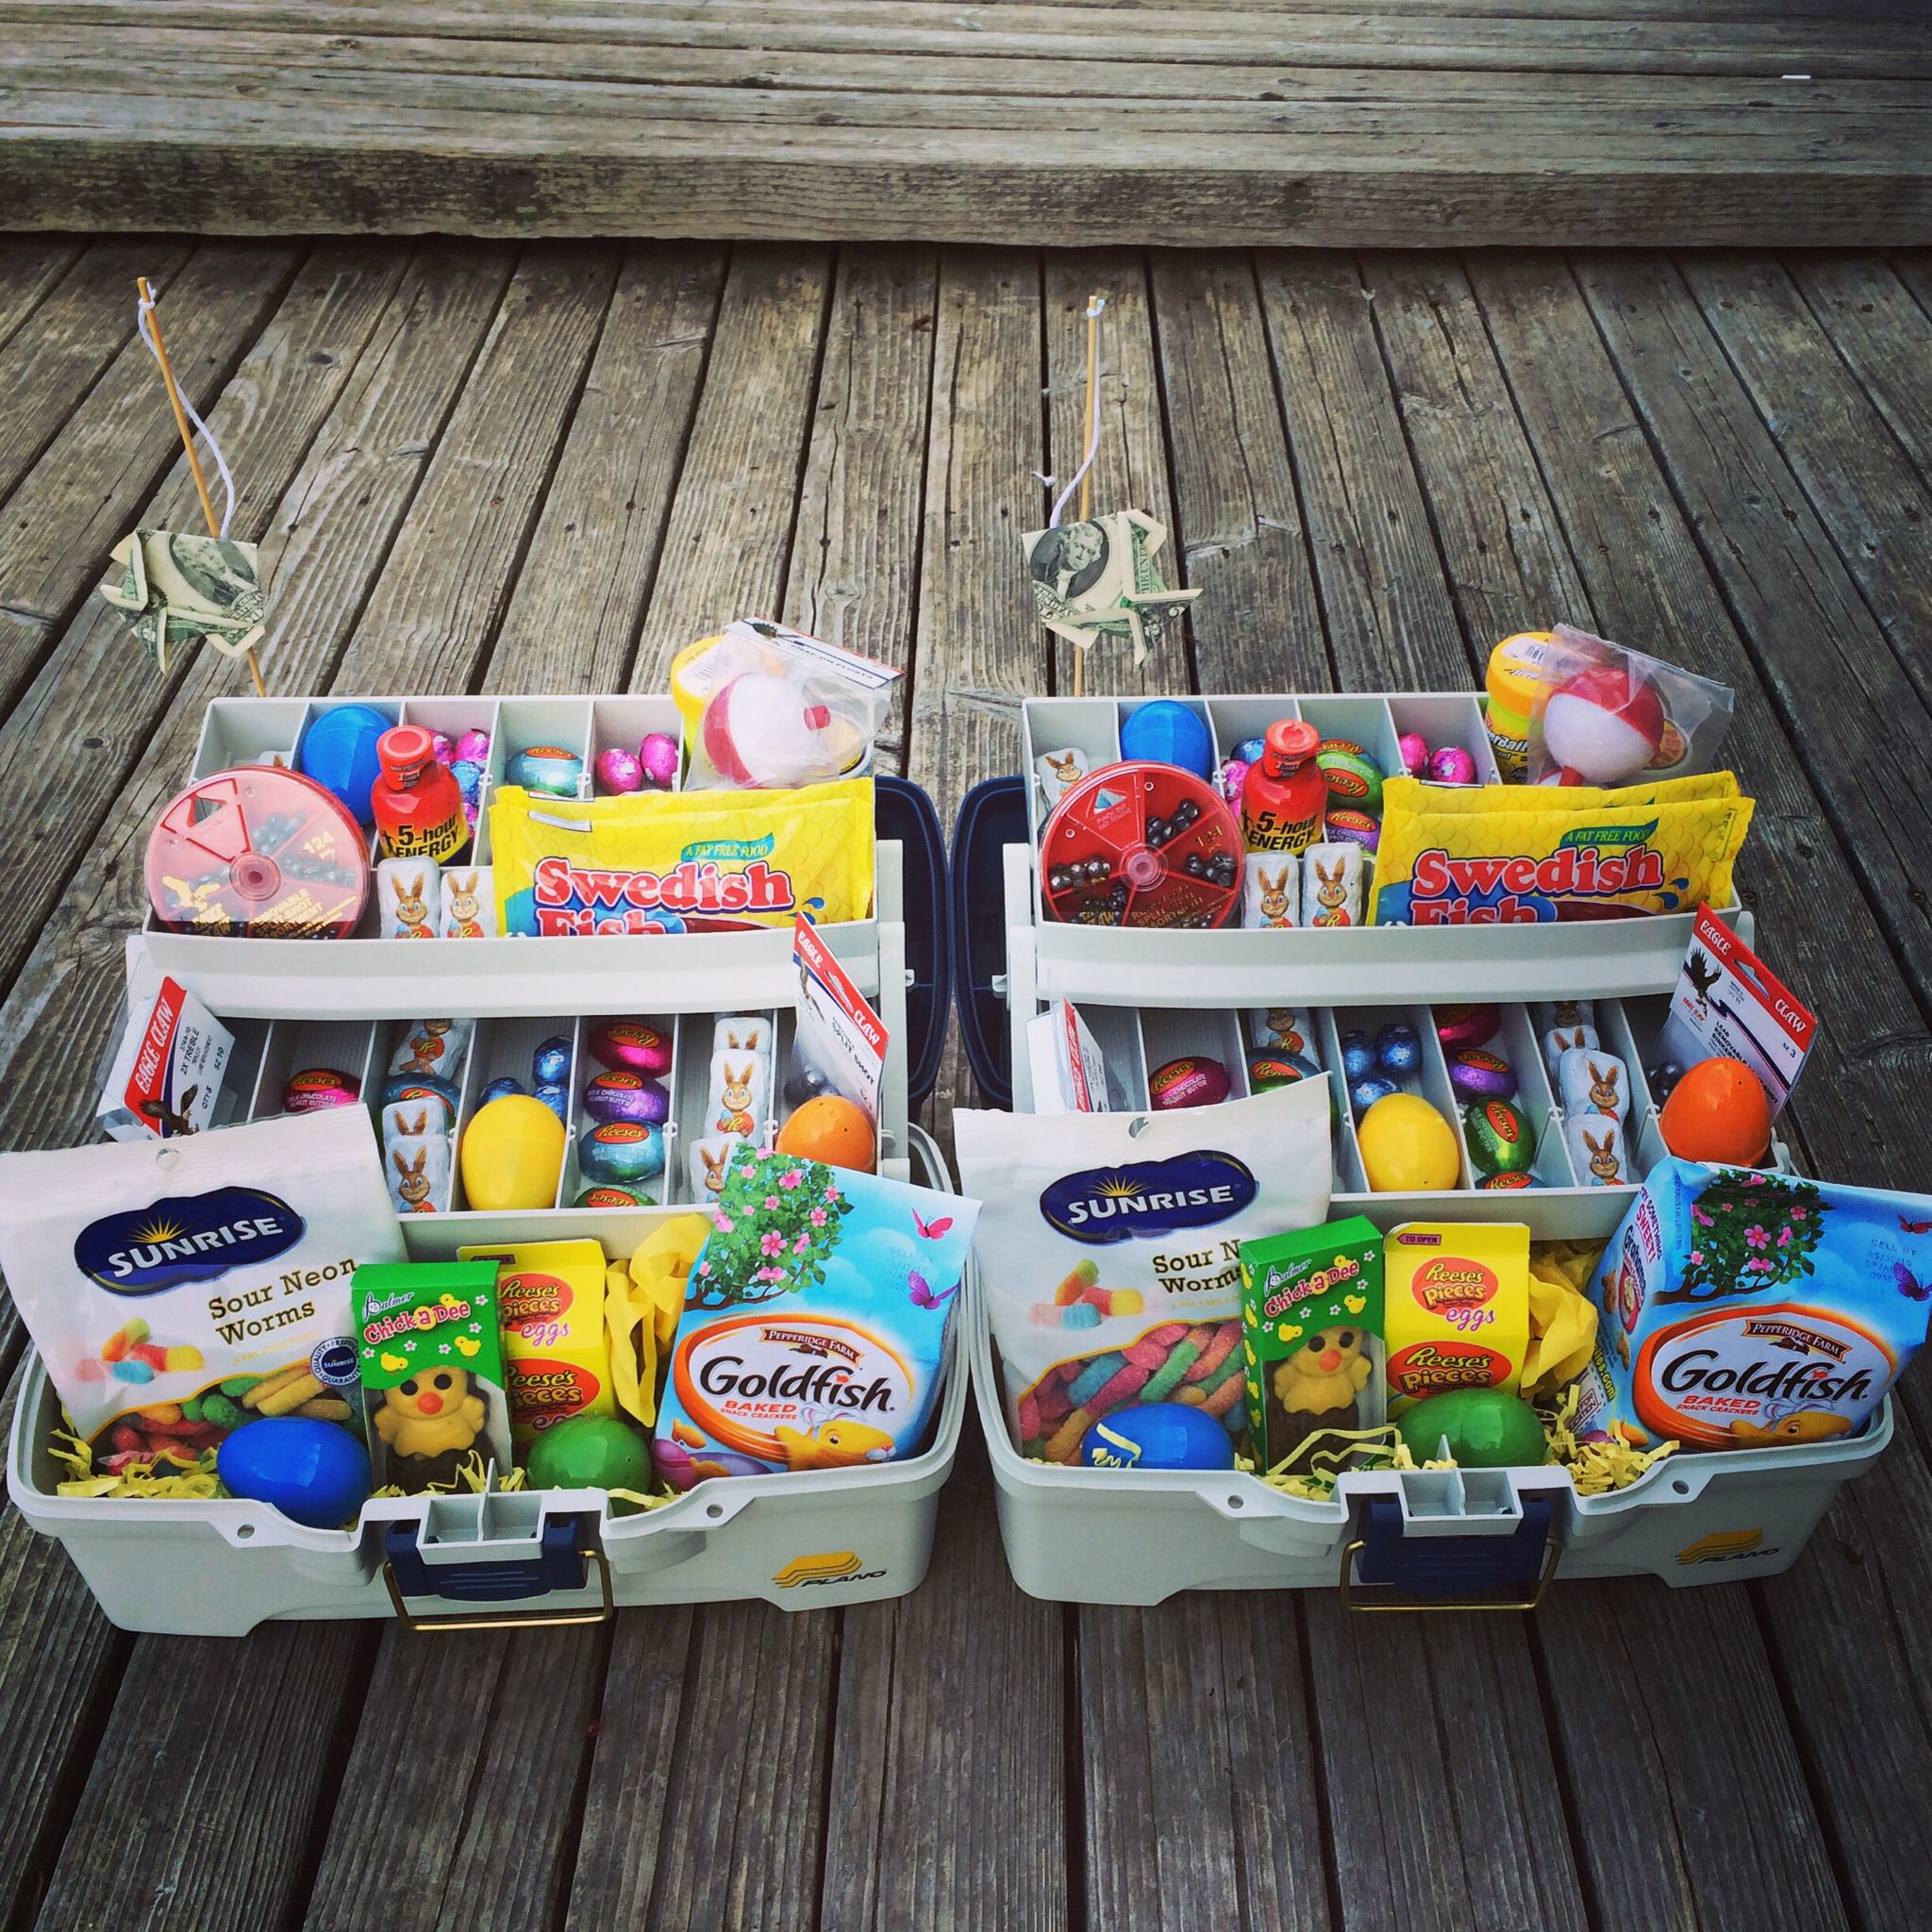 25 great easter basket ideas tackle box goldfish crackers and made these tackle boxesbaskets has gummy worms goldfish crackers and swedish fish added some easter candy and plastic eggs in all the compartments negle Gallery